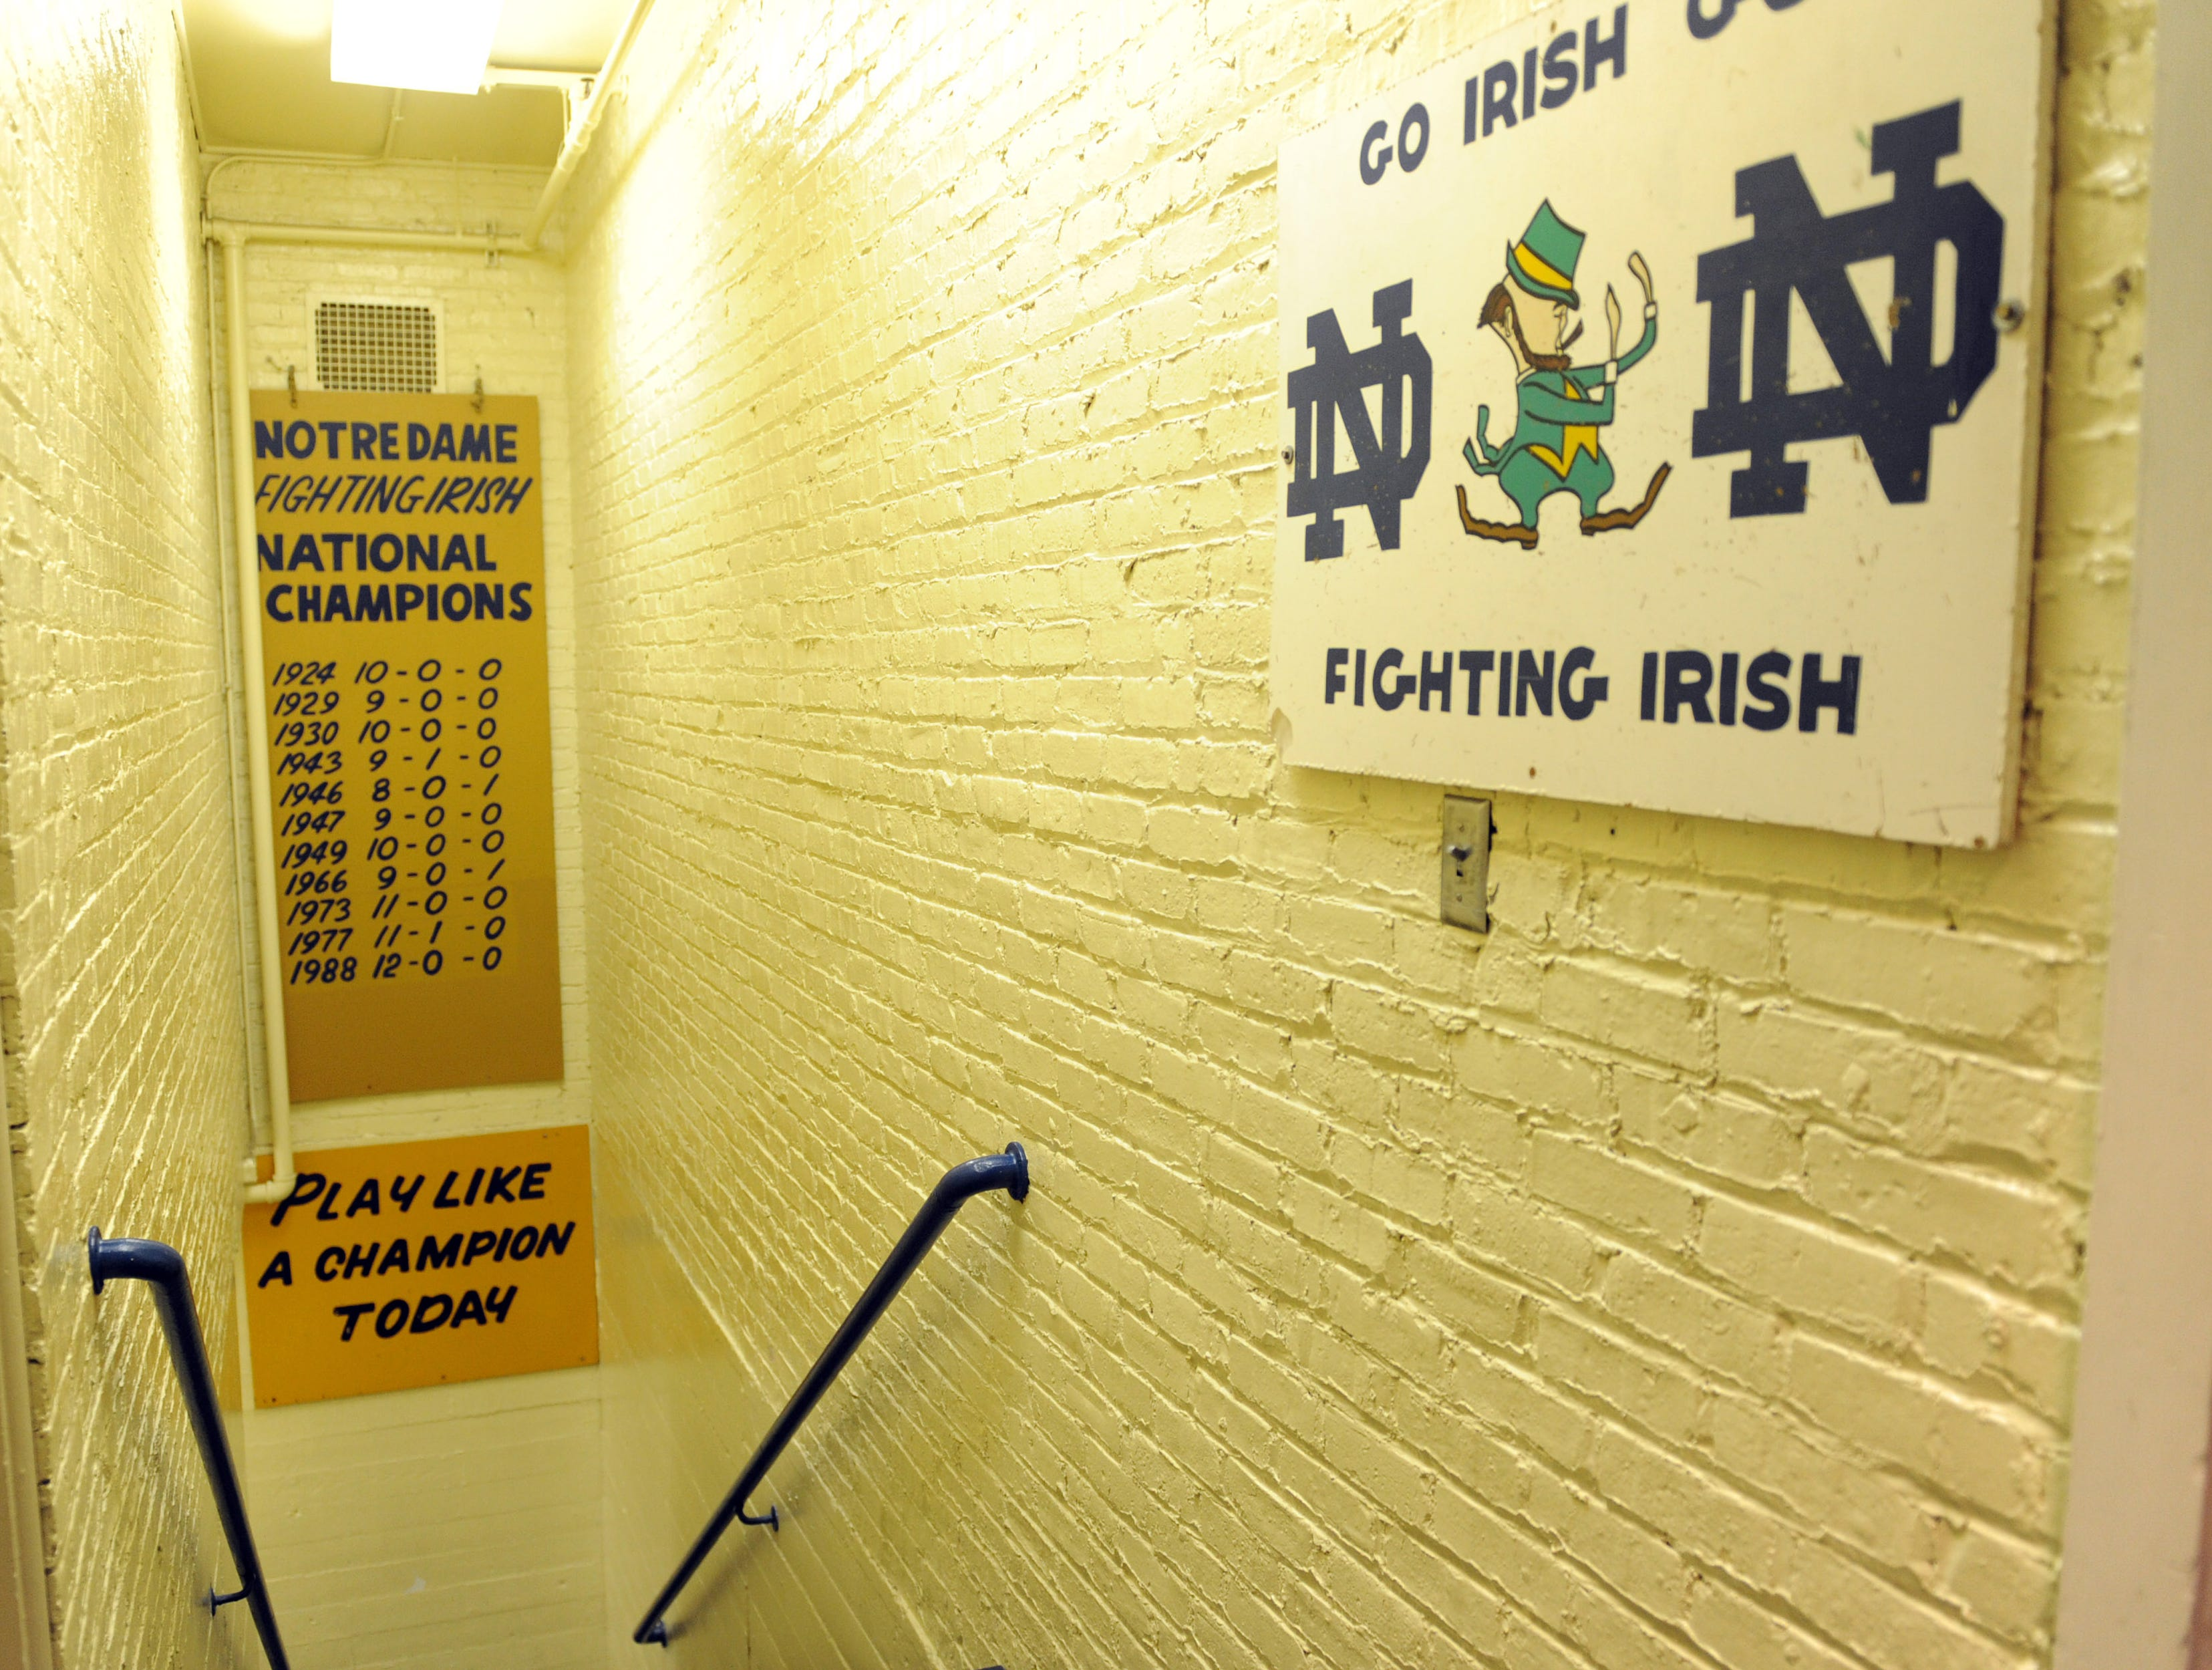 Notre Dame Stadium, Notre Dame: History greets you before you step foot in the stadium that is home to one of the game's most storied programs.